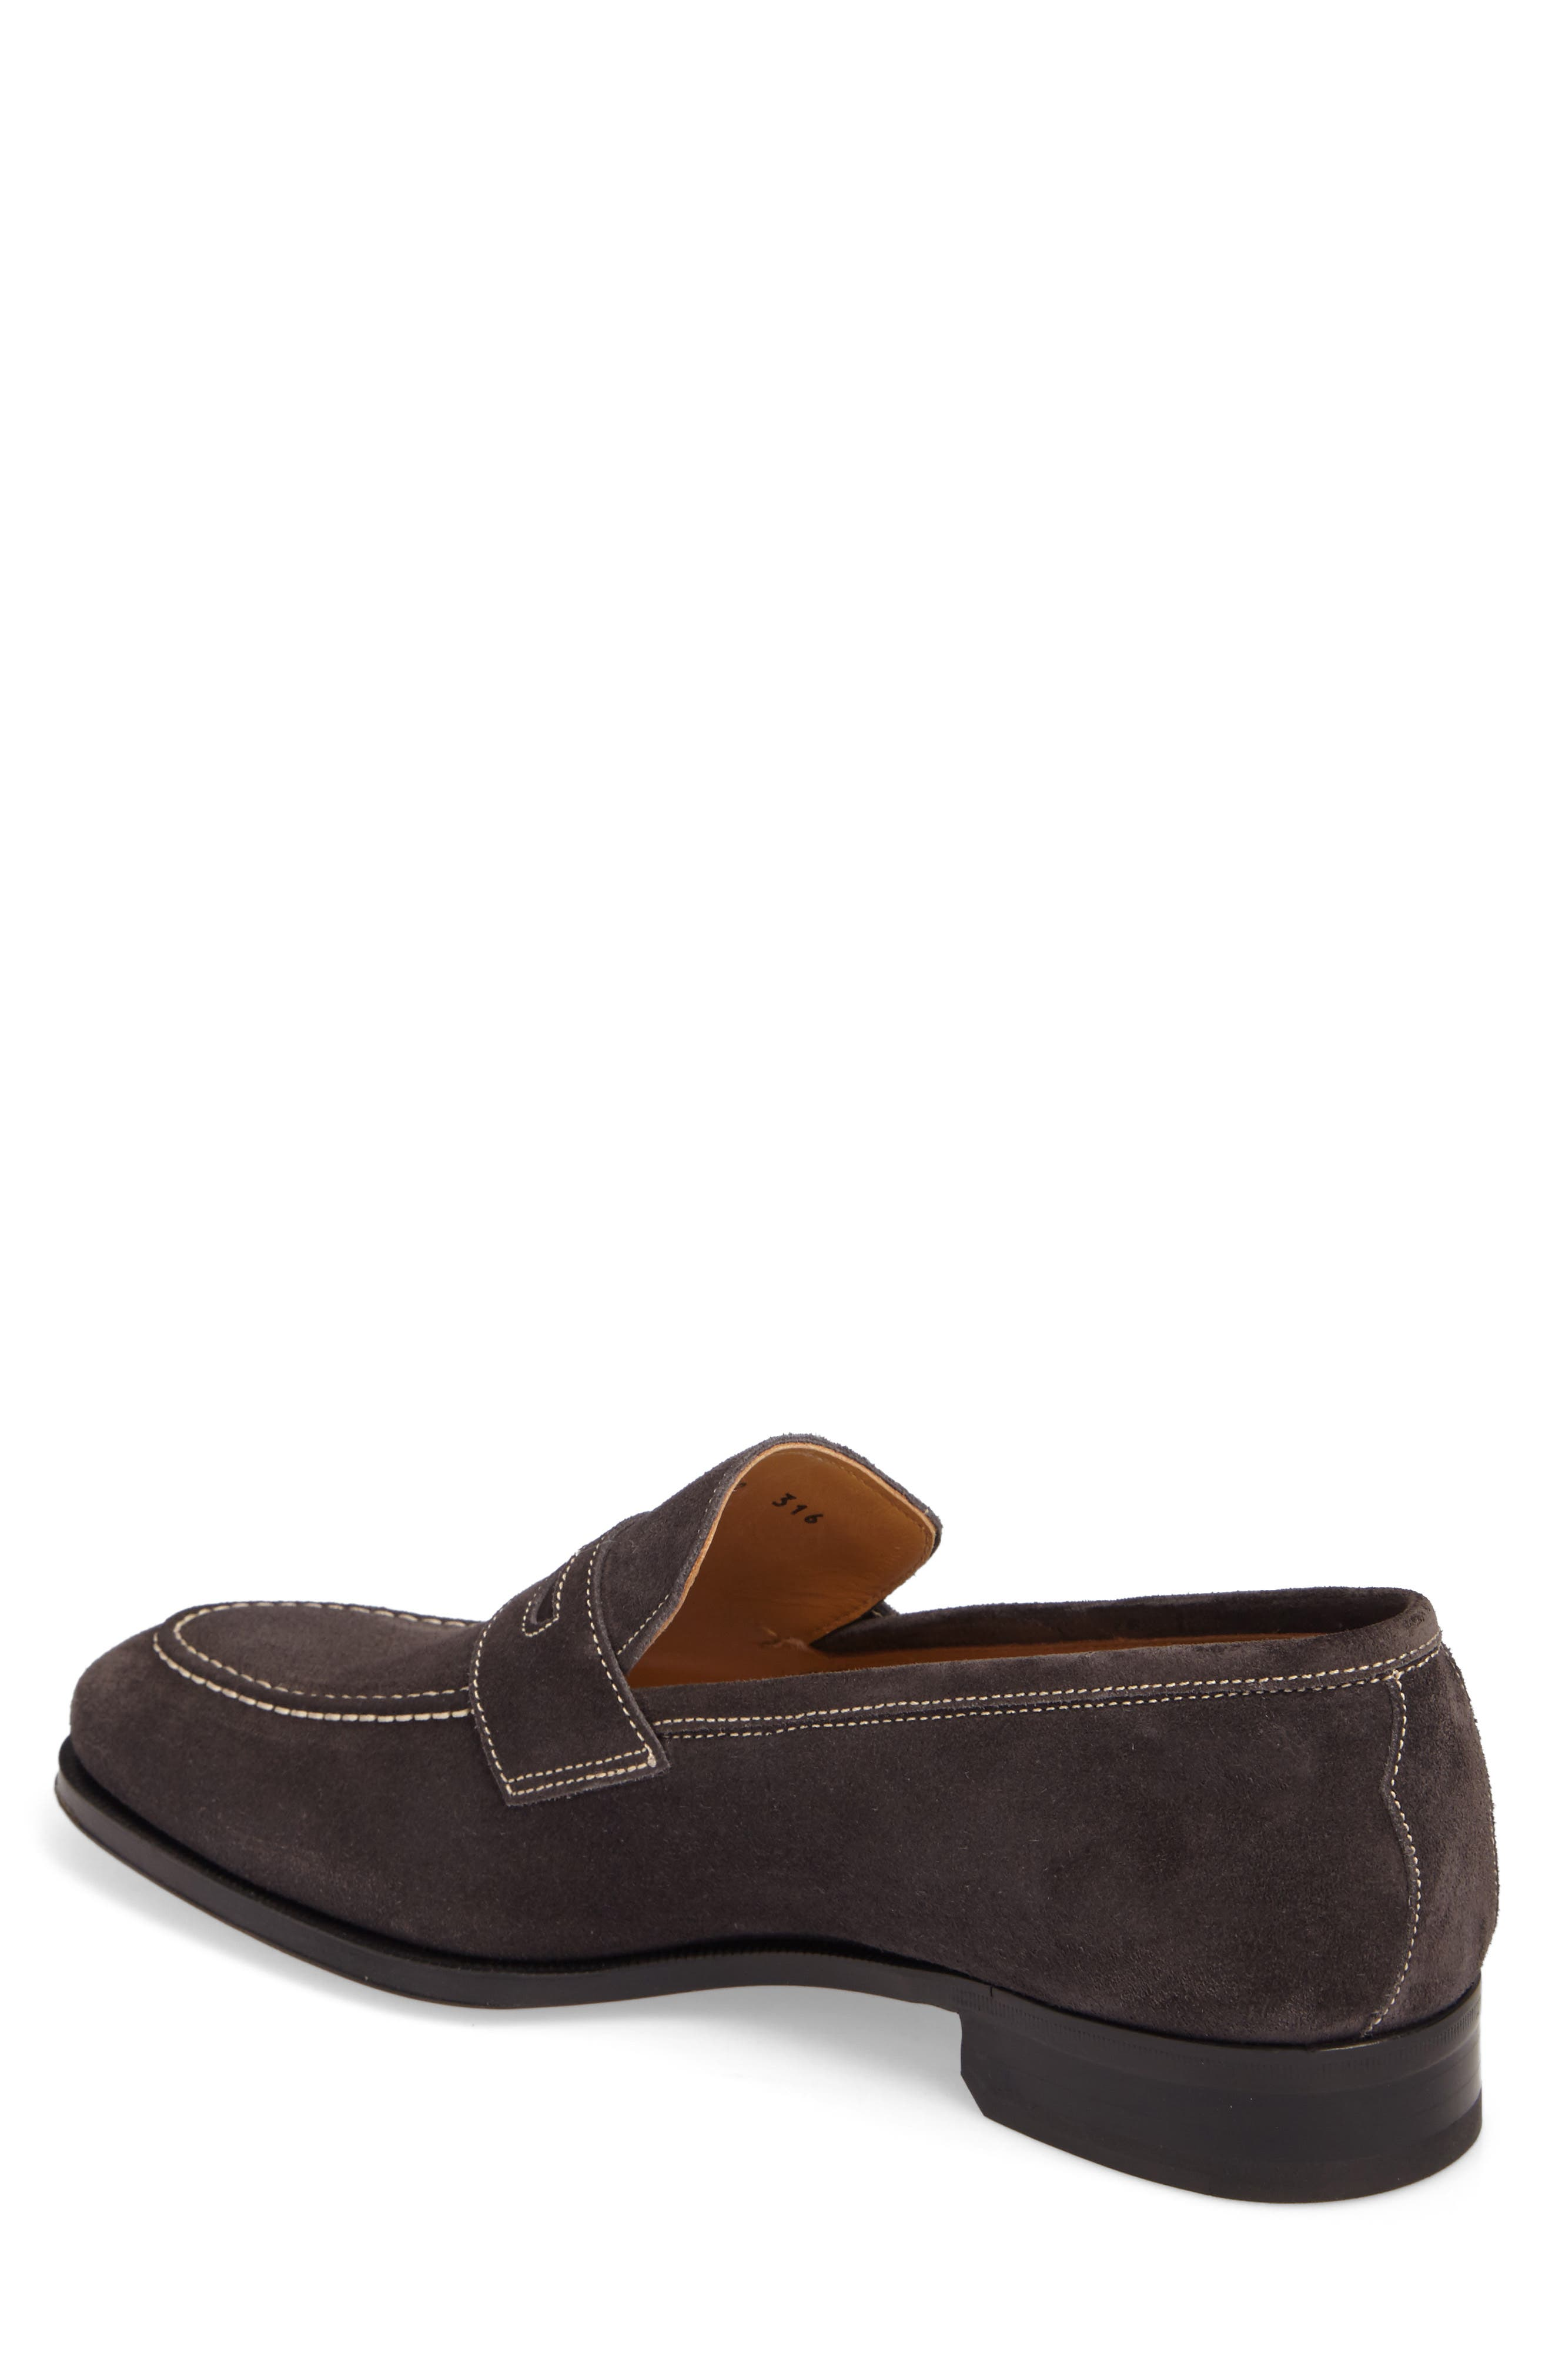 Leather Penny Loafer,                             Alternate thumbnail 6, color,